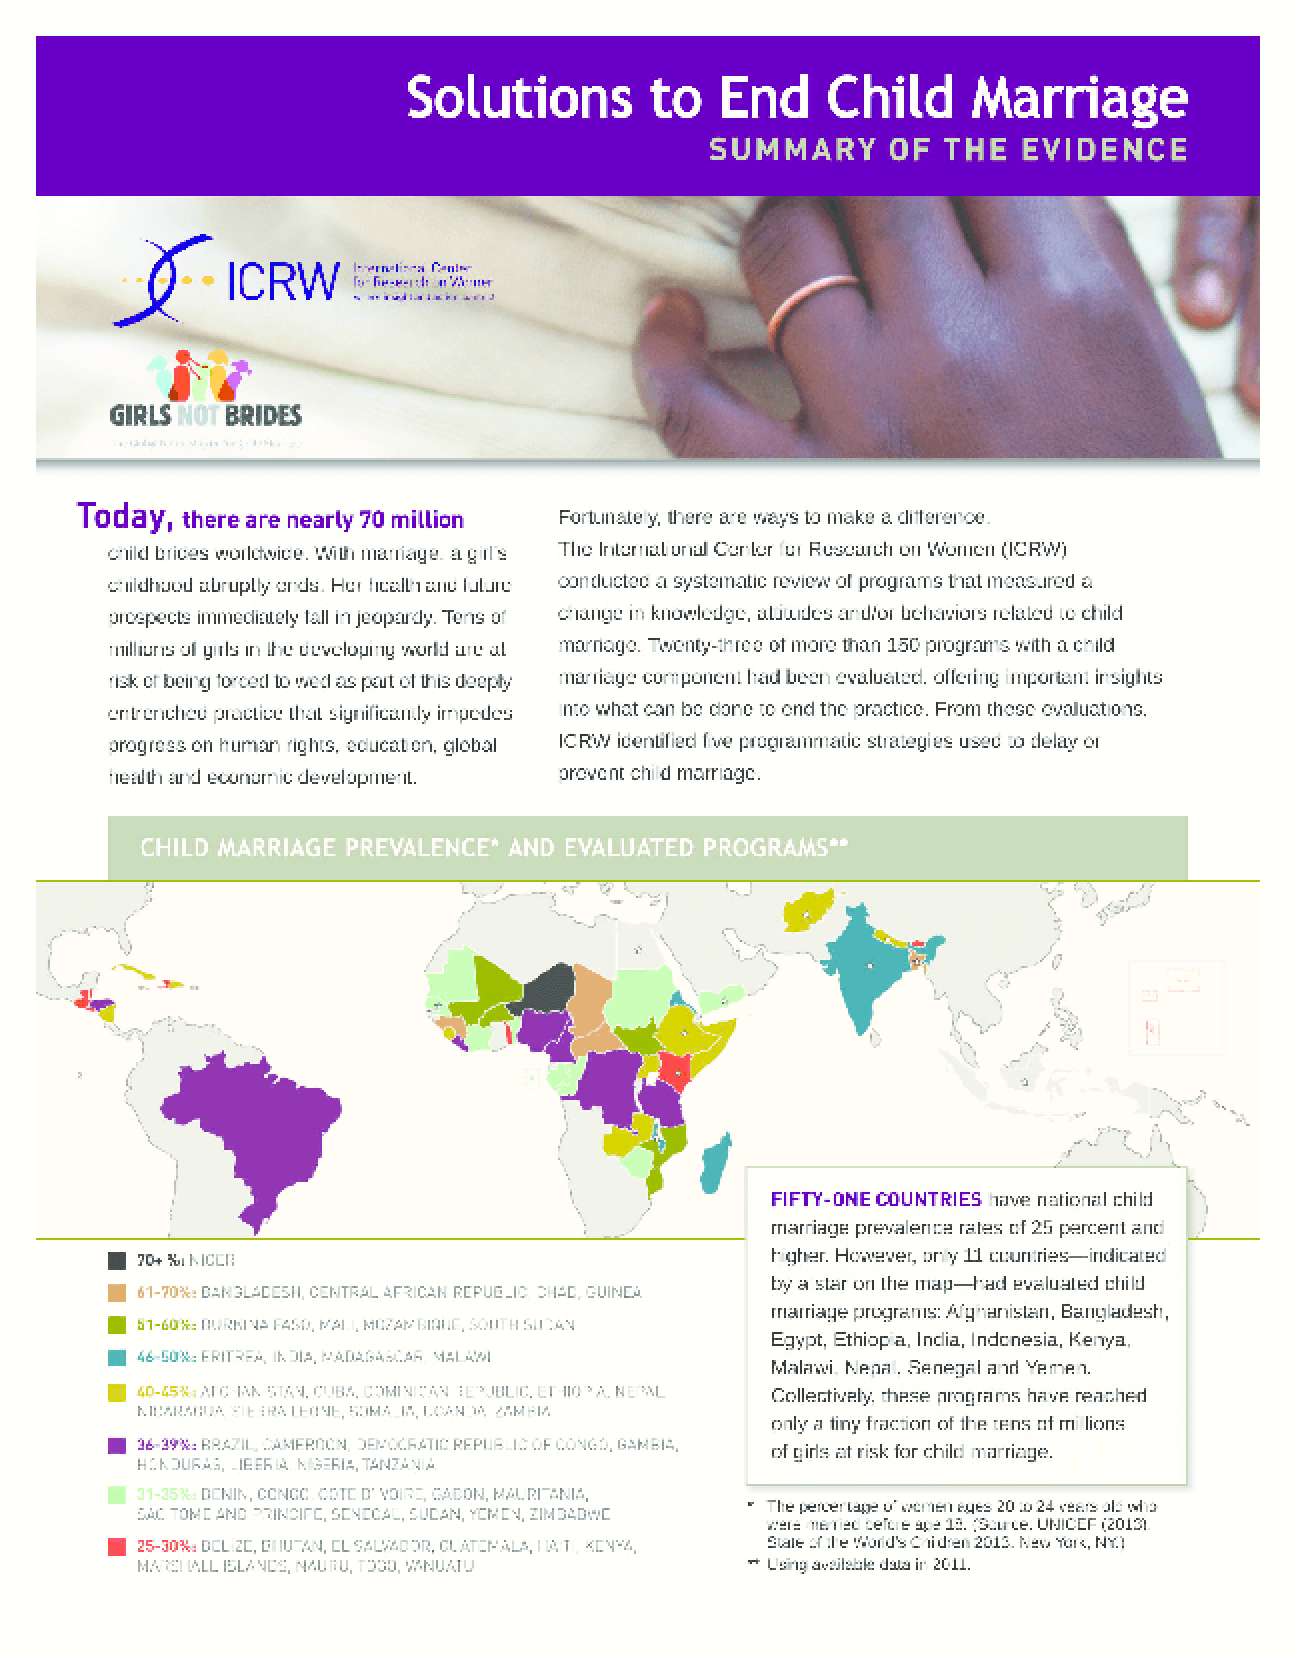 Solutions to End Child Marriage: Summary of the Evidence